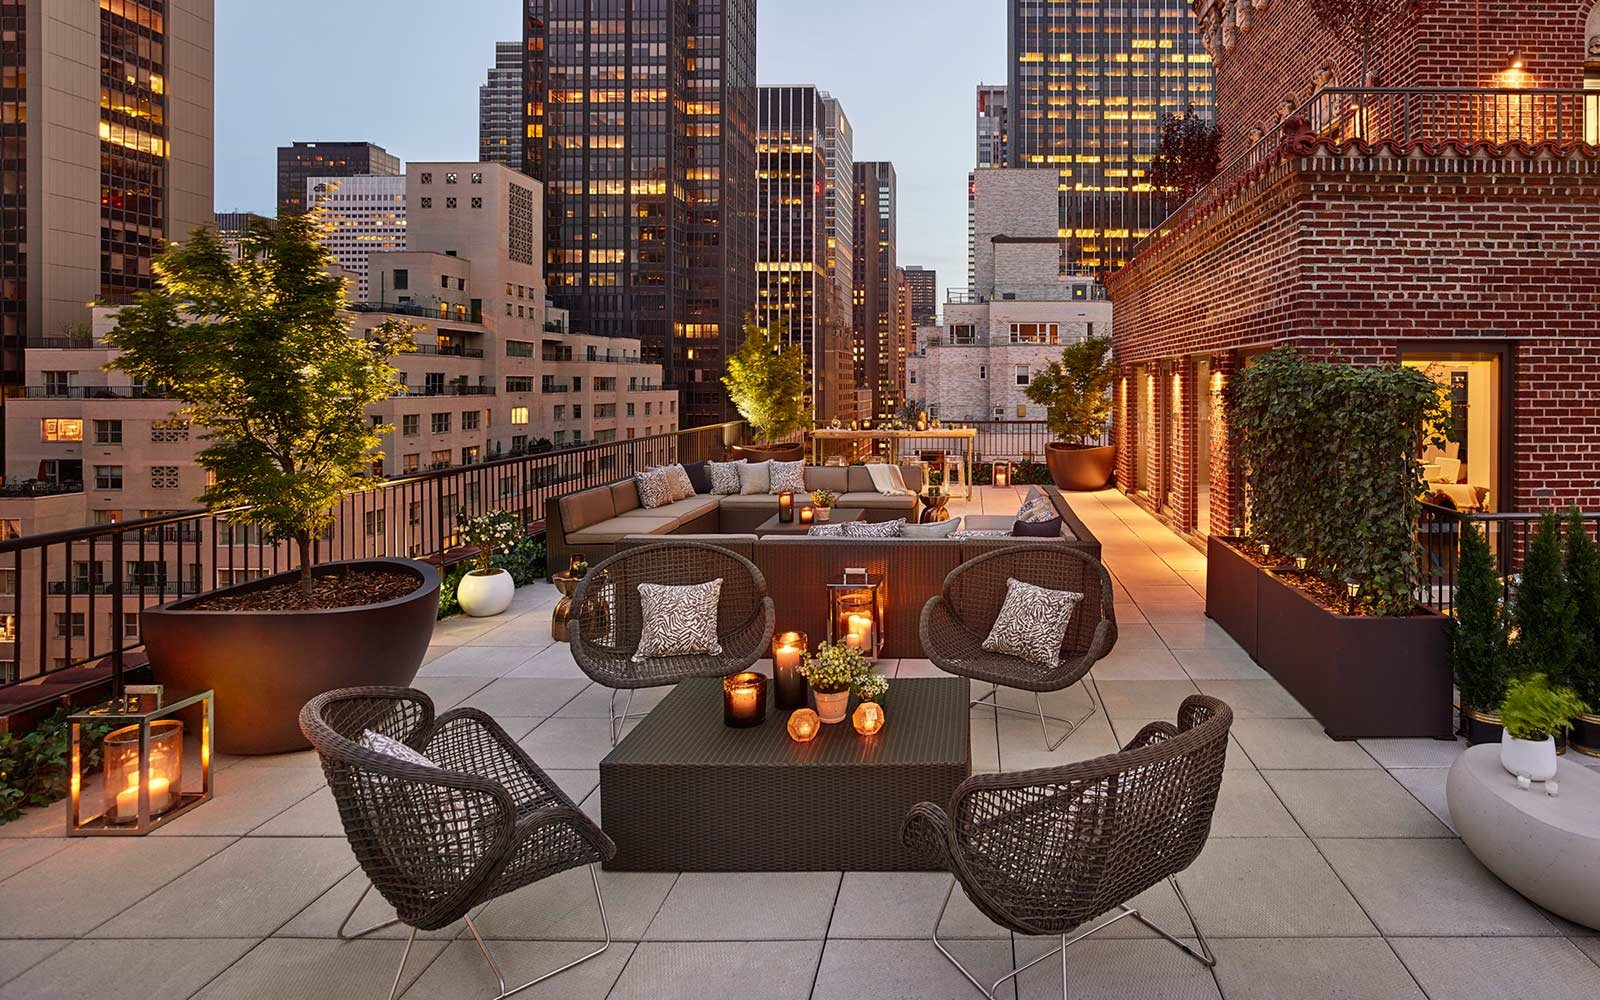 The Quin, New York City